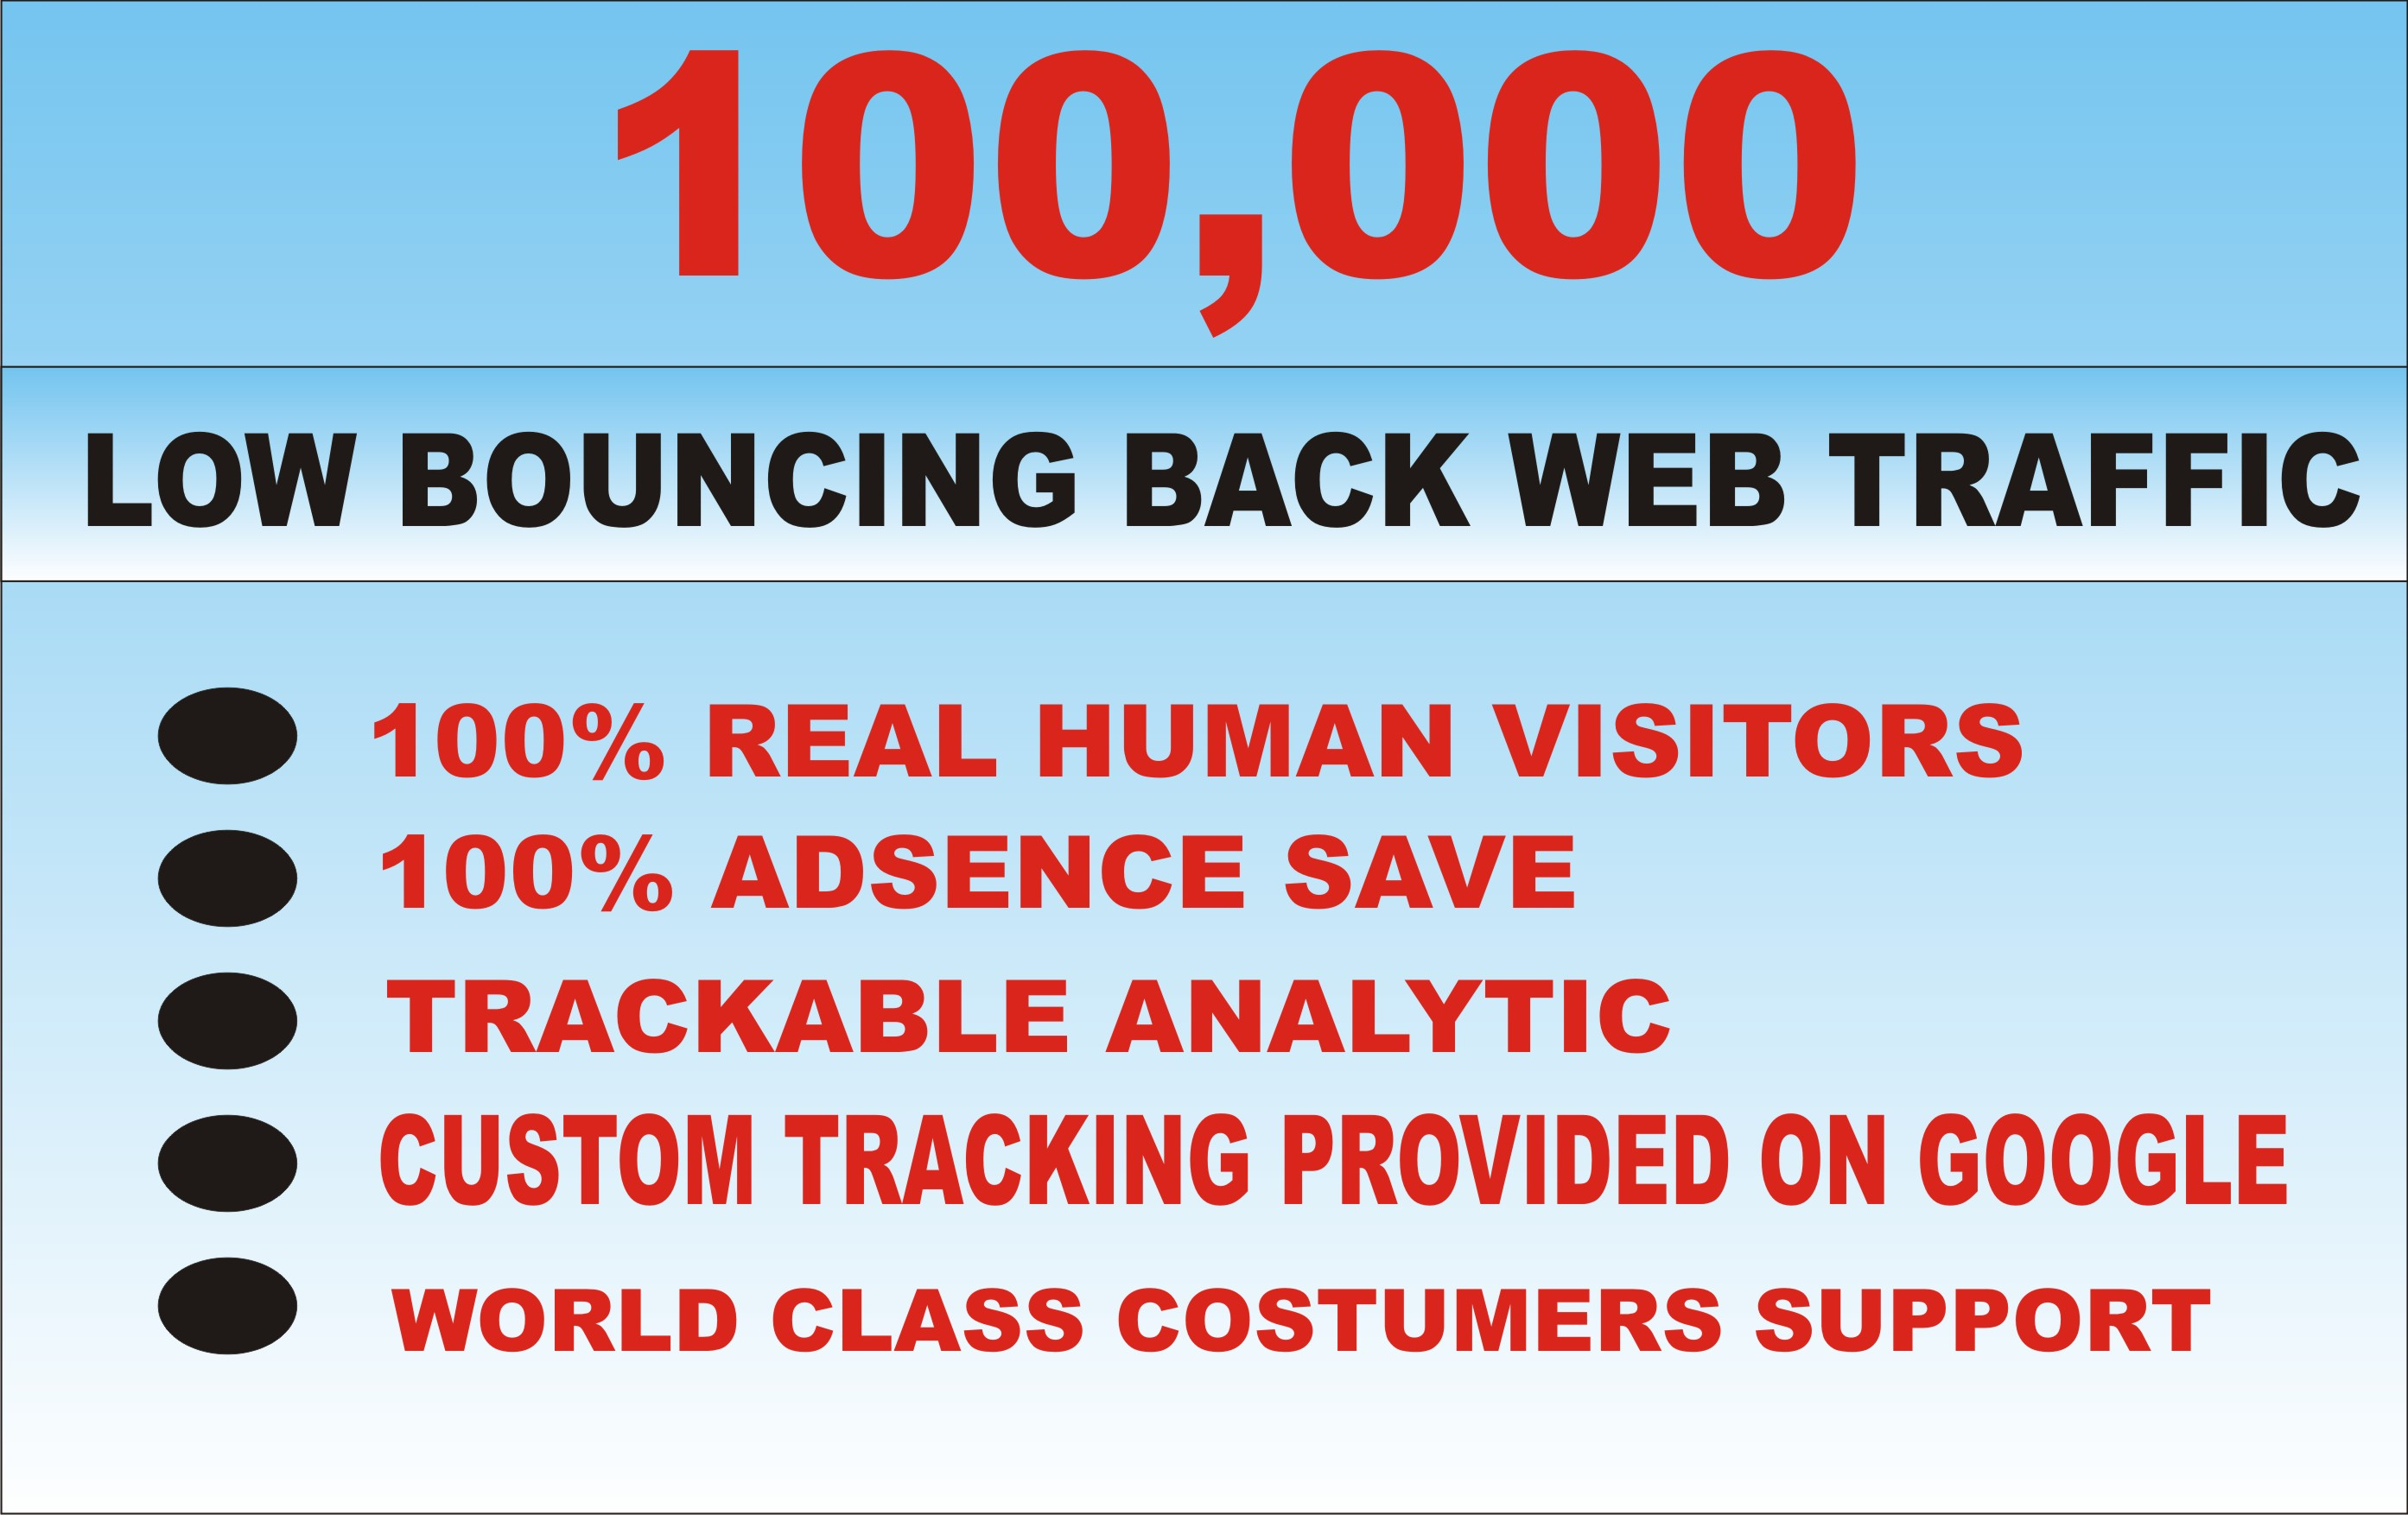 DRIVE 100,000 LOW BOUNCING BACK WEB TRAFFIC TO YOUR WEBSITE